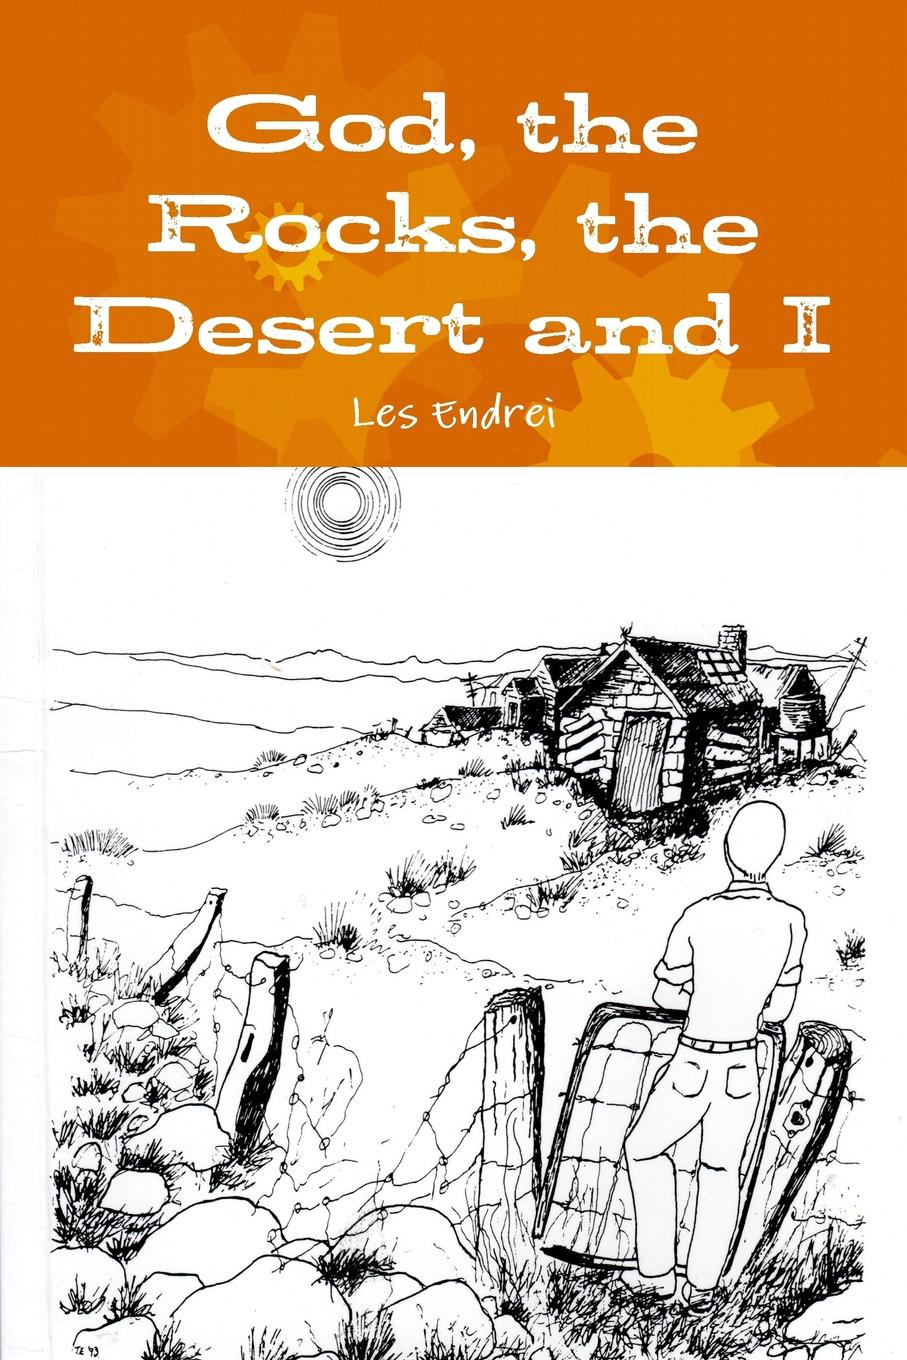 Les Endrei God, the Rocks, the Desert and I poems to live by in troubling times